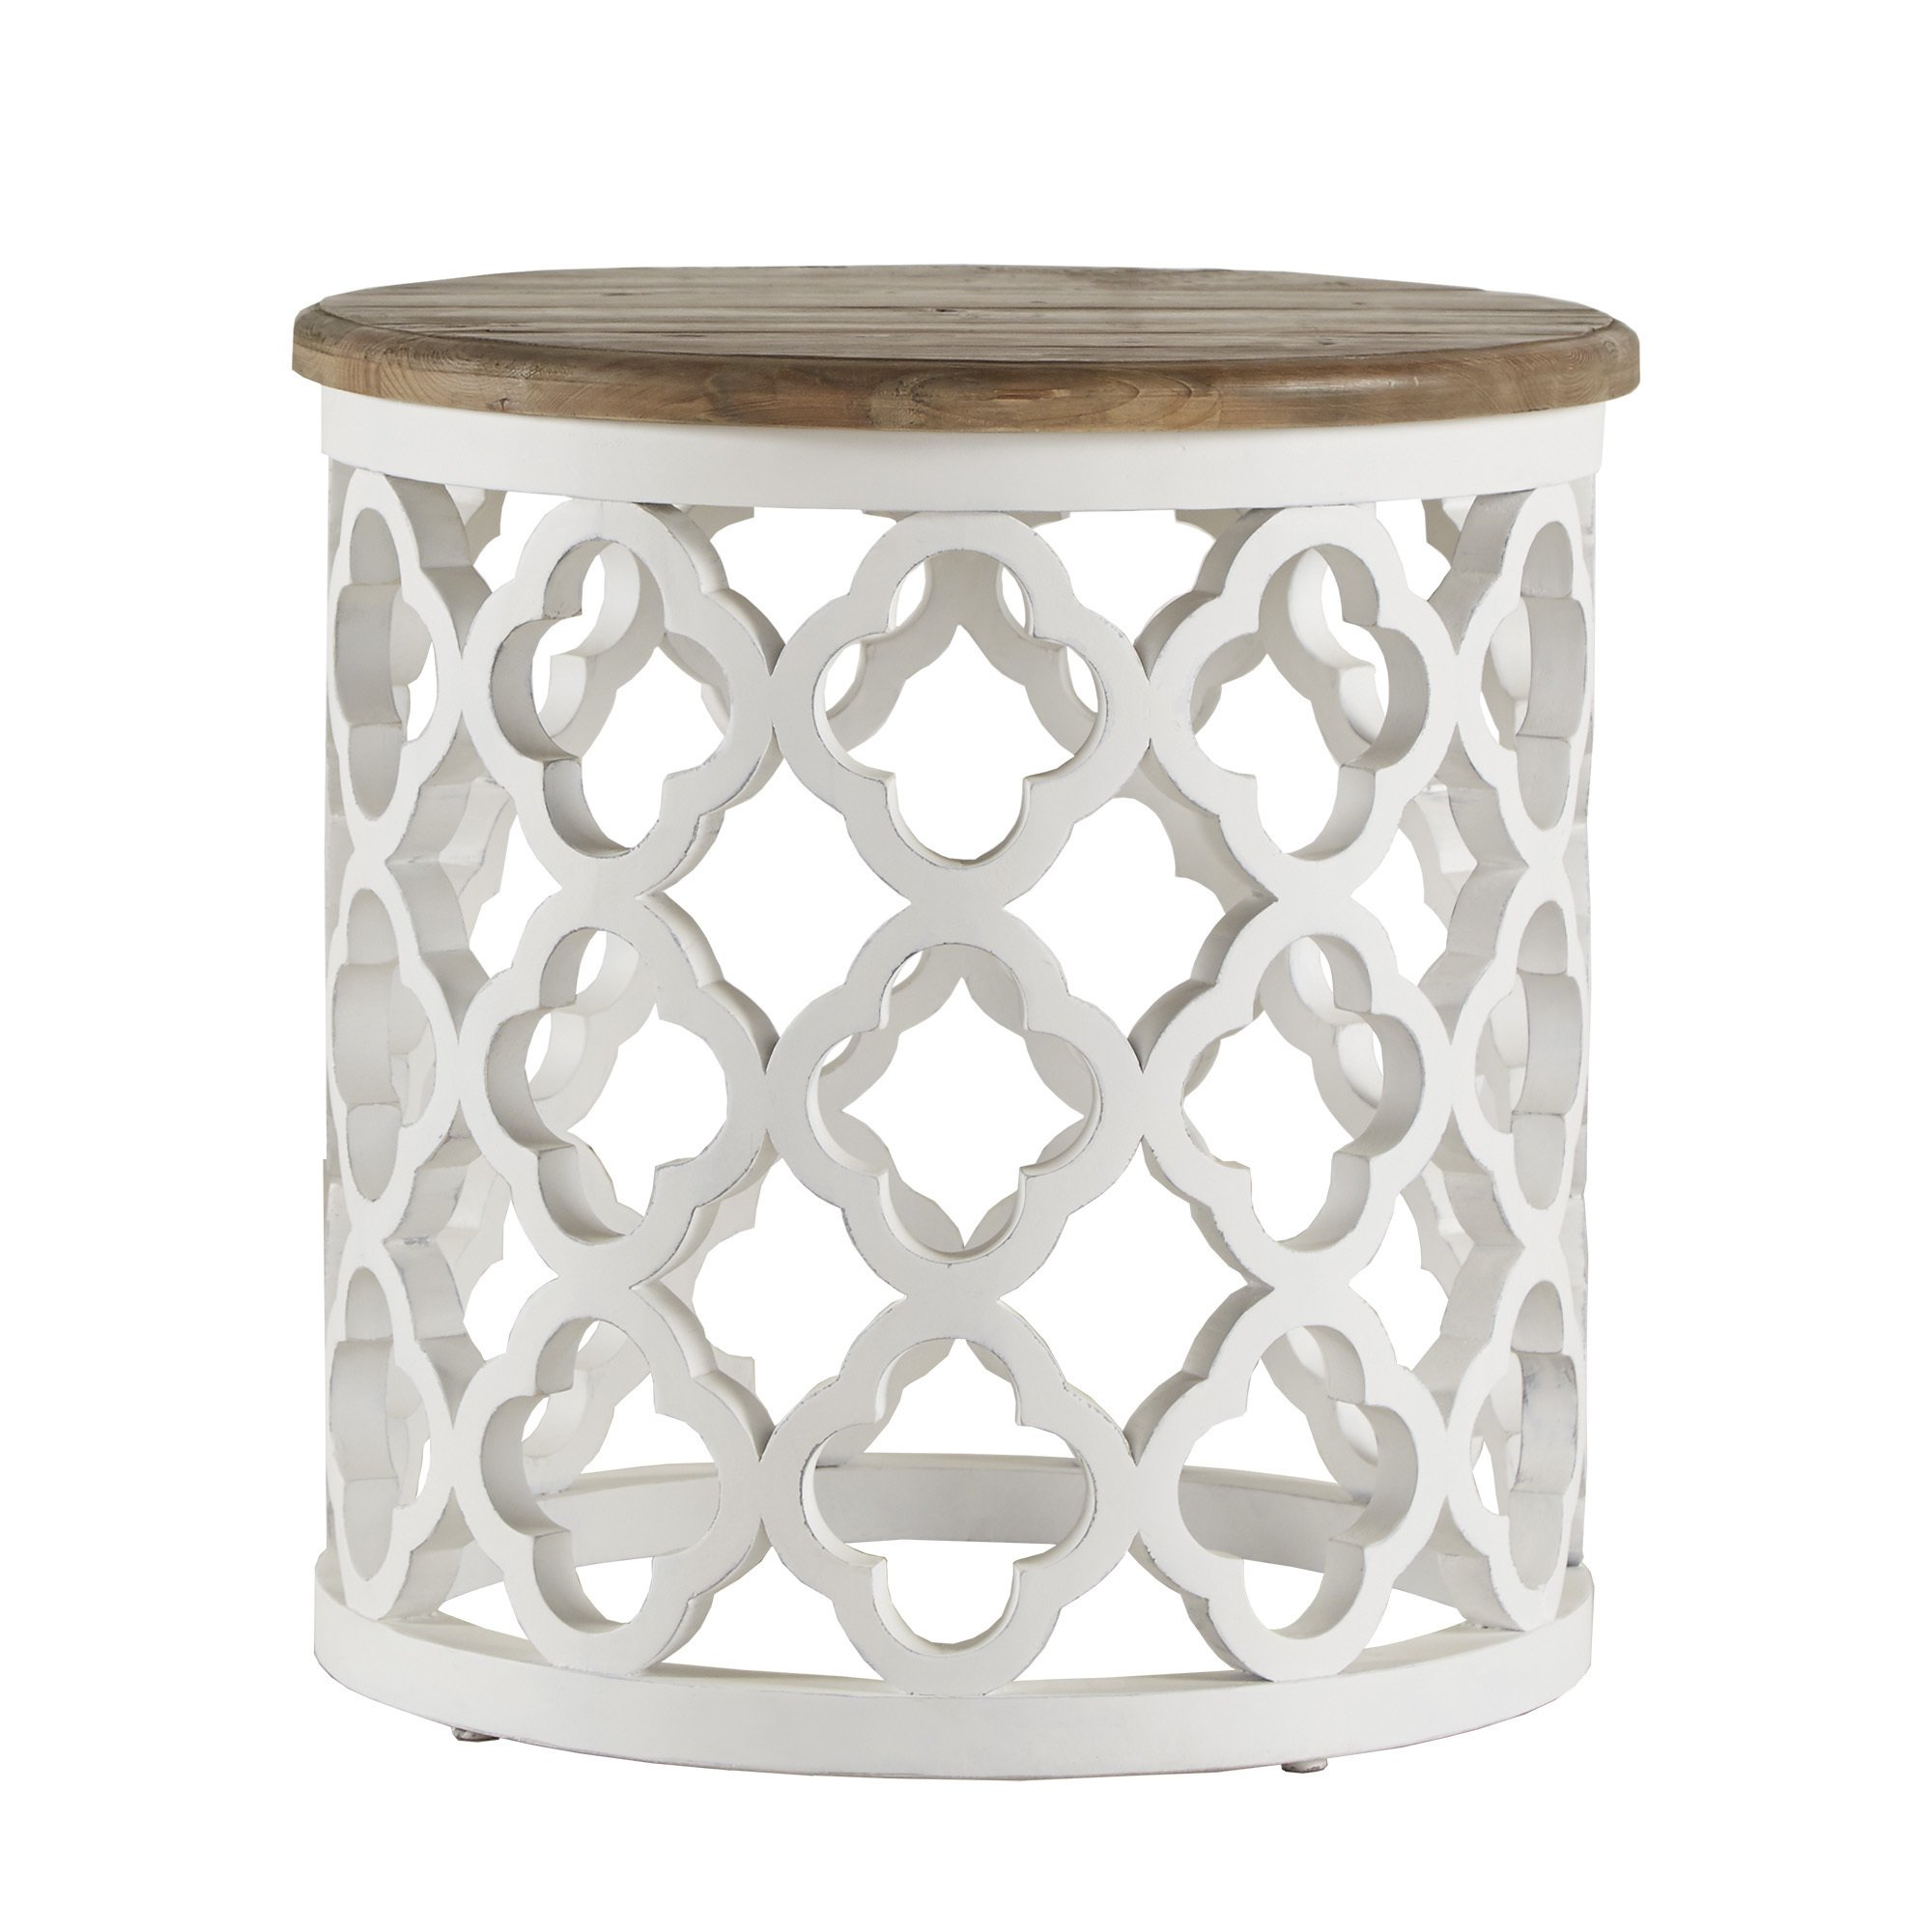 vince reclaimed wood moroccan trellis drum accent table inspire artisan free shipping today inch round tablecloth cherry dinner blue glass lamp narrow end pier one candles trestle